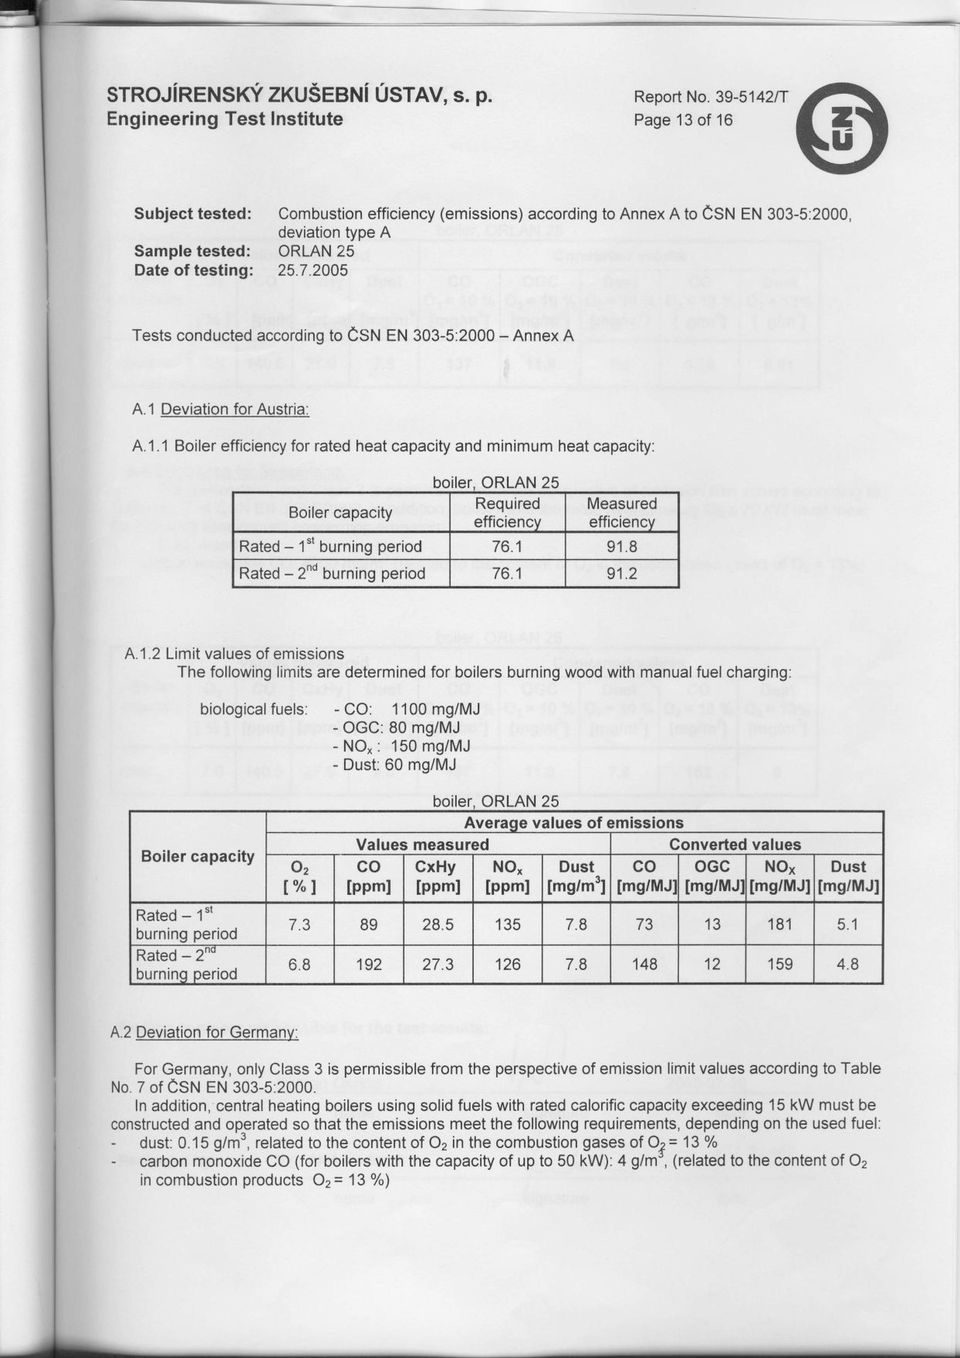 2005 Tests conducted according to CSN EN 303-5:2000 - Annex A A.1 Deviation foraustria: A.1.1 Boiler efficiency for rated heat capacity and minimum heat capacity: boiler.